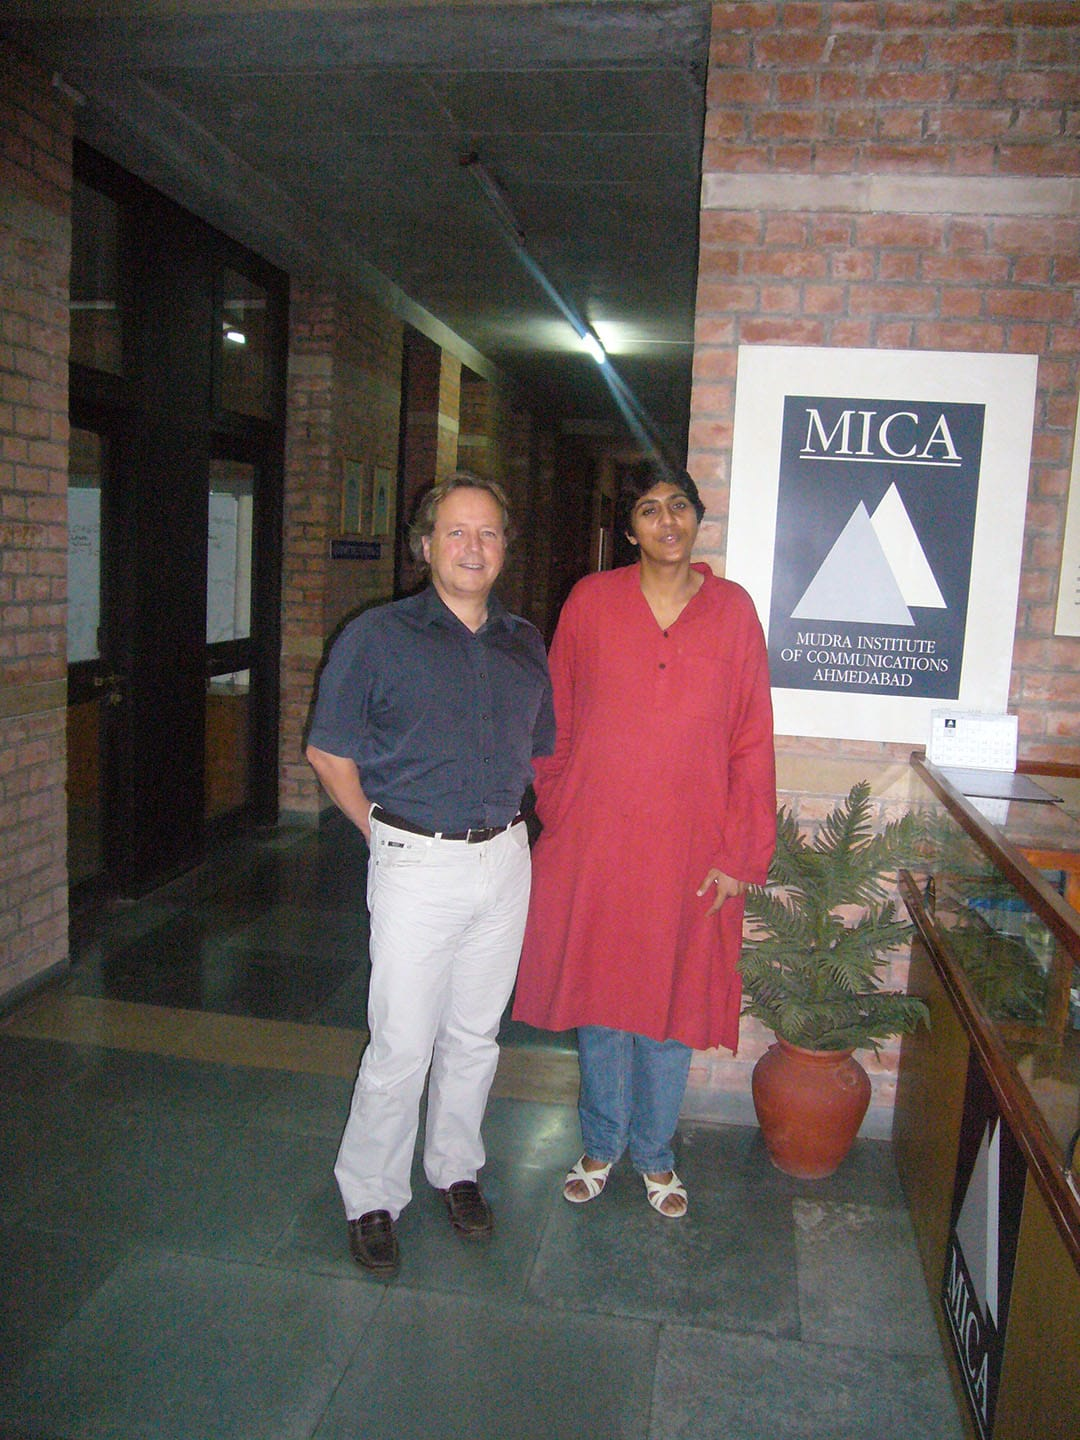 Chanddraputa Amritar Mudra Institute of communications Ahmedabad, Indien